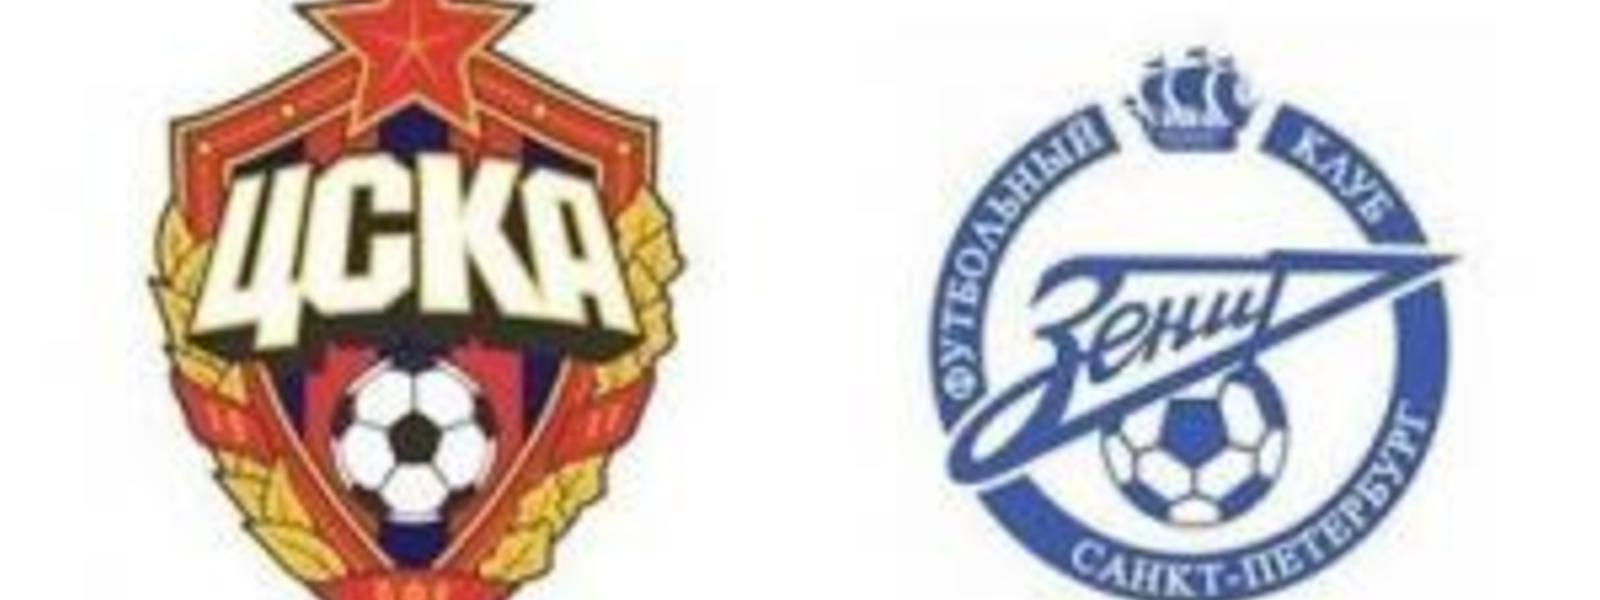 Very big cska zenit